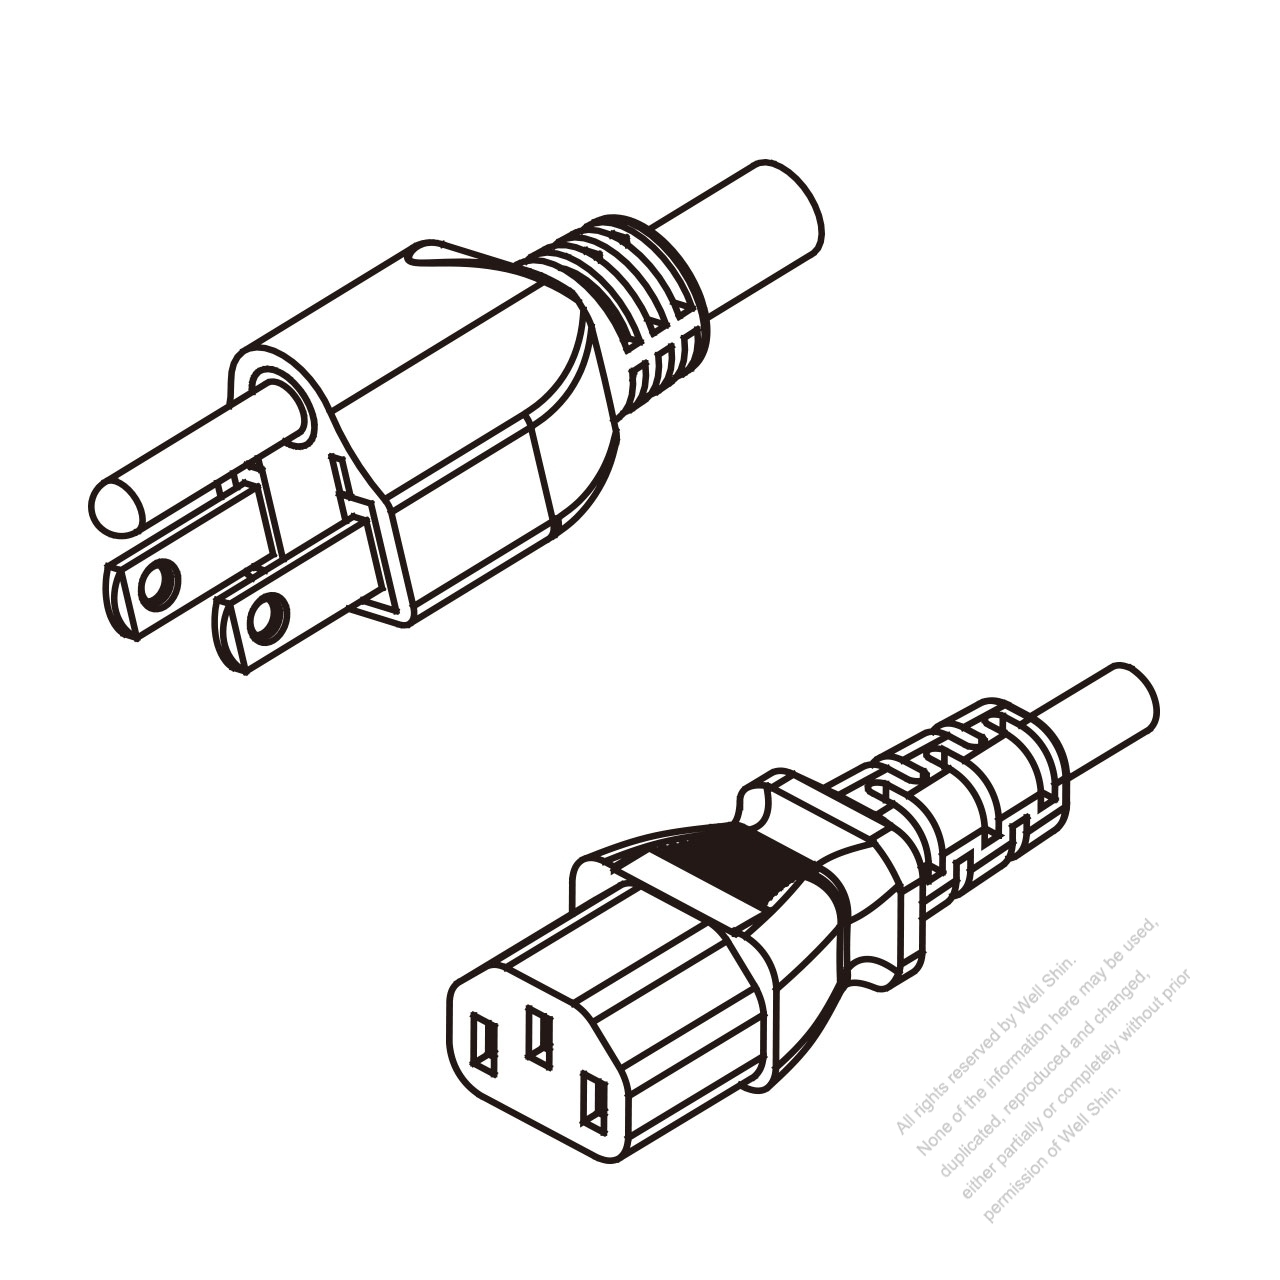 Taiwan 3-Pin Plug To IEC 320 C13 AC Power Cord Set Molding